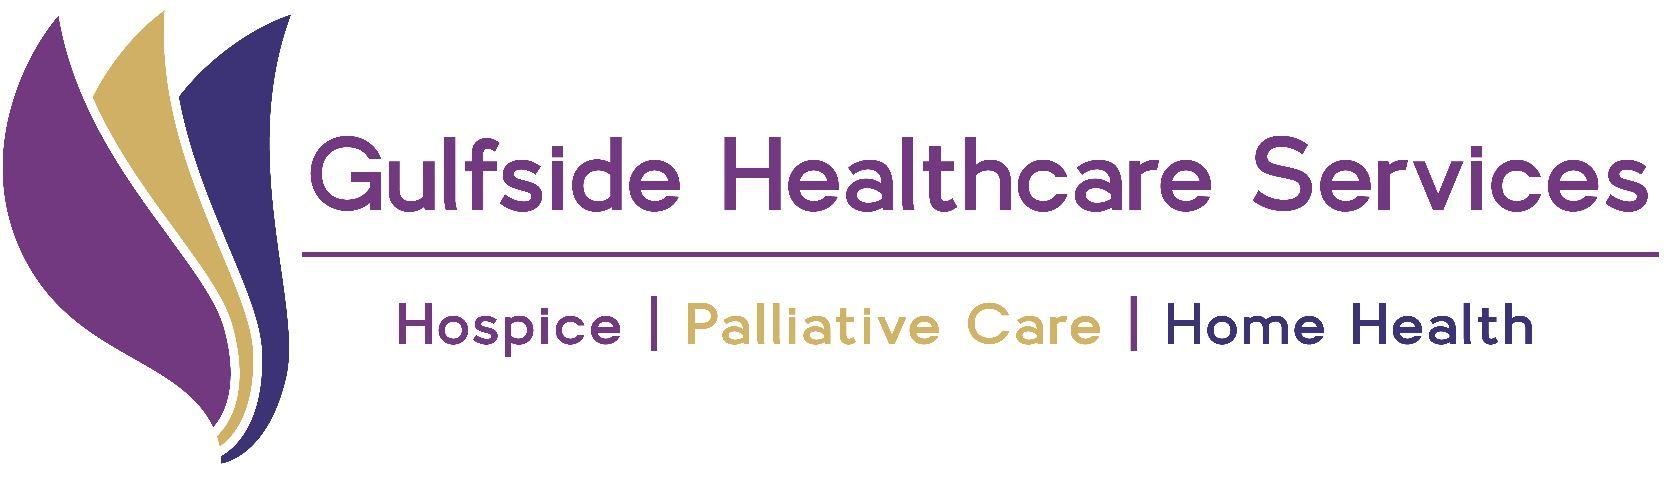 Rn Case Manager Pool Gulfside Healthcare Services